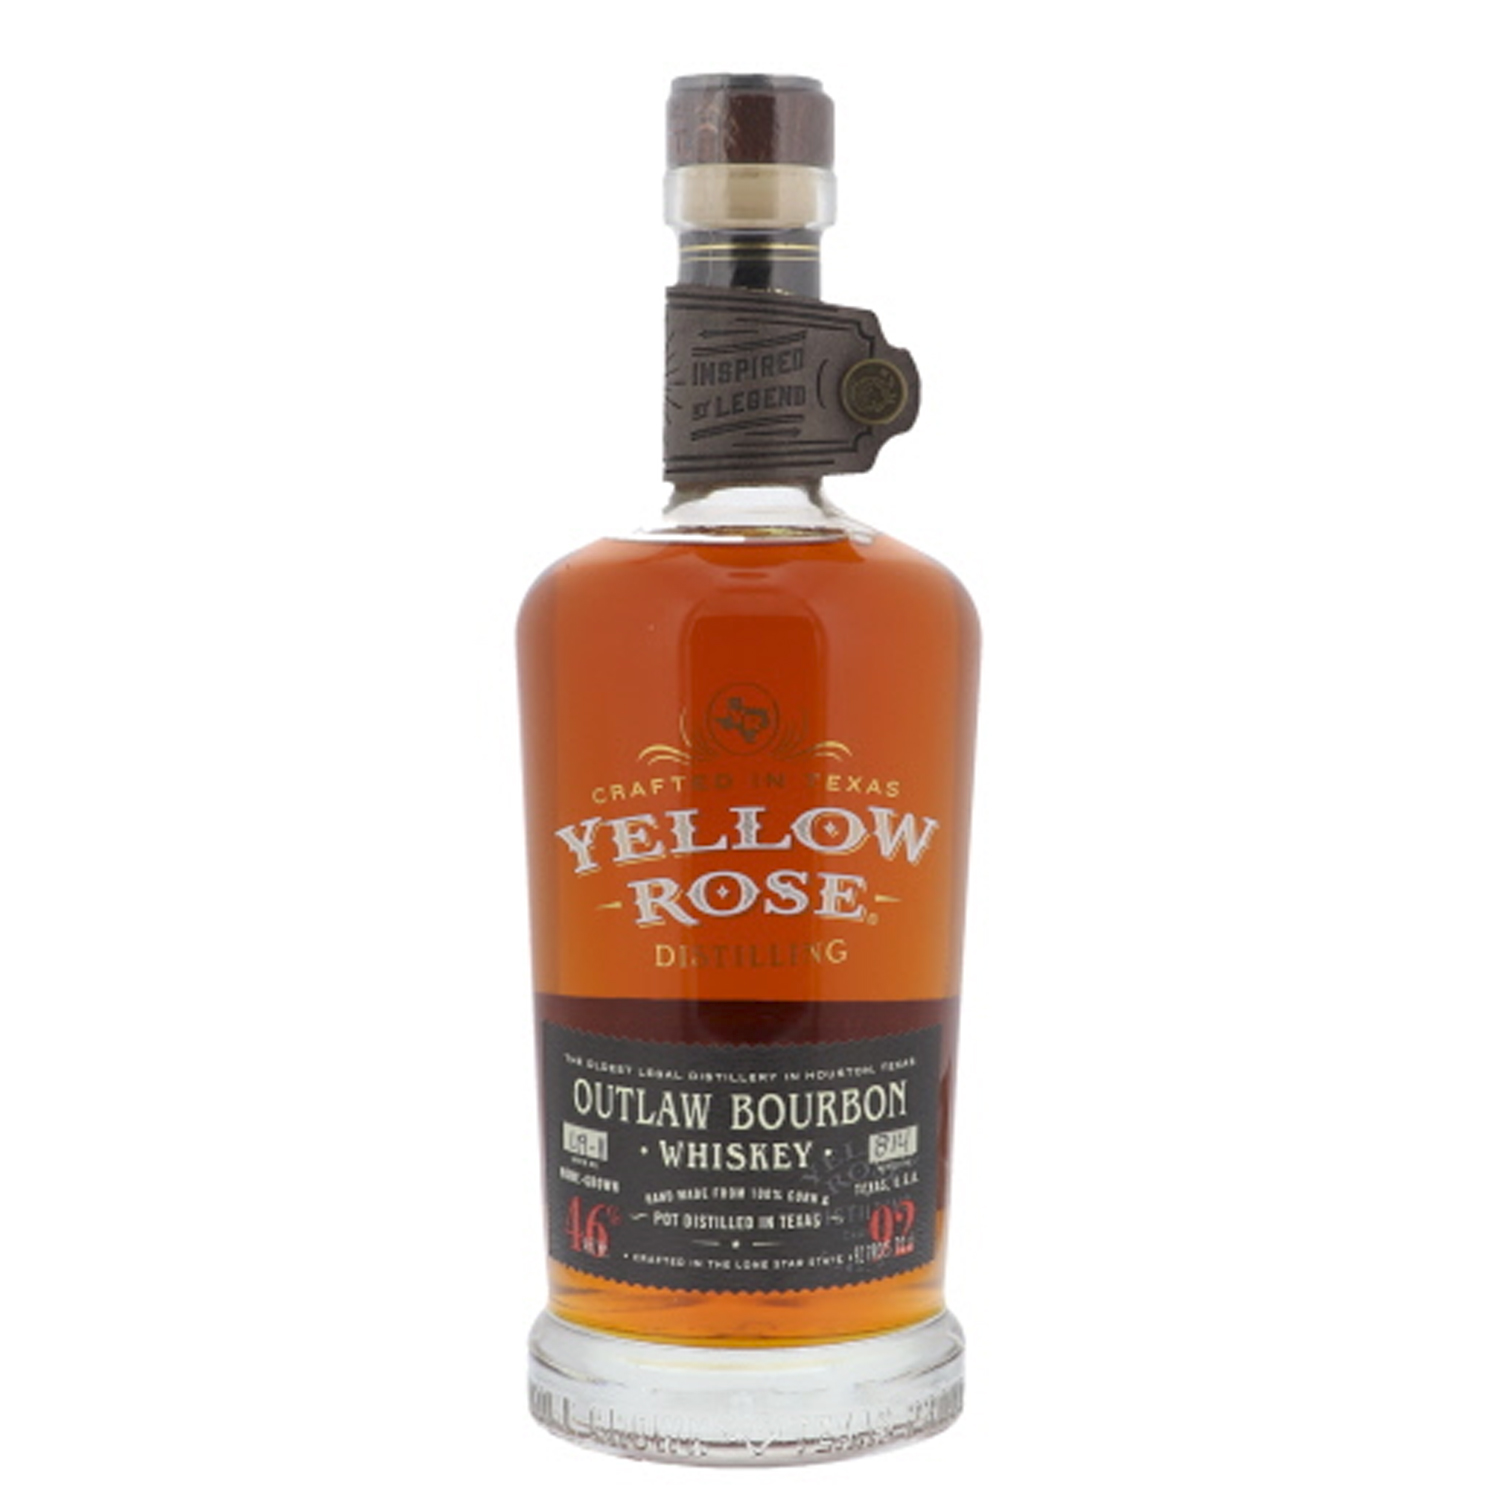 Whisky - Yellow Rose - Outlaw Bourbon Whiskey - 70cl - 40°